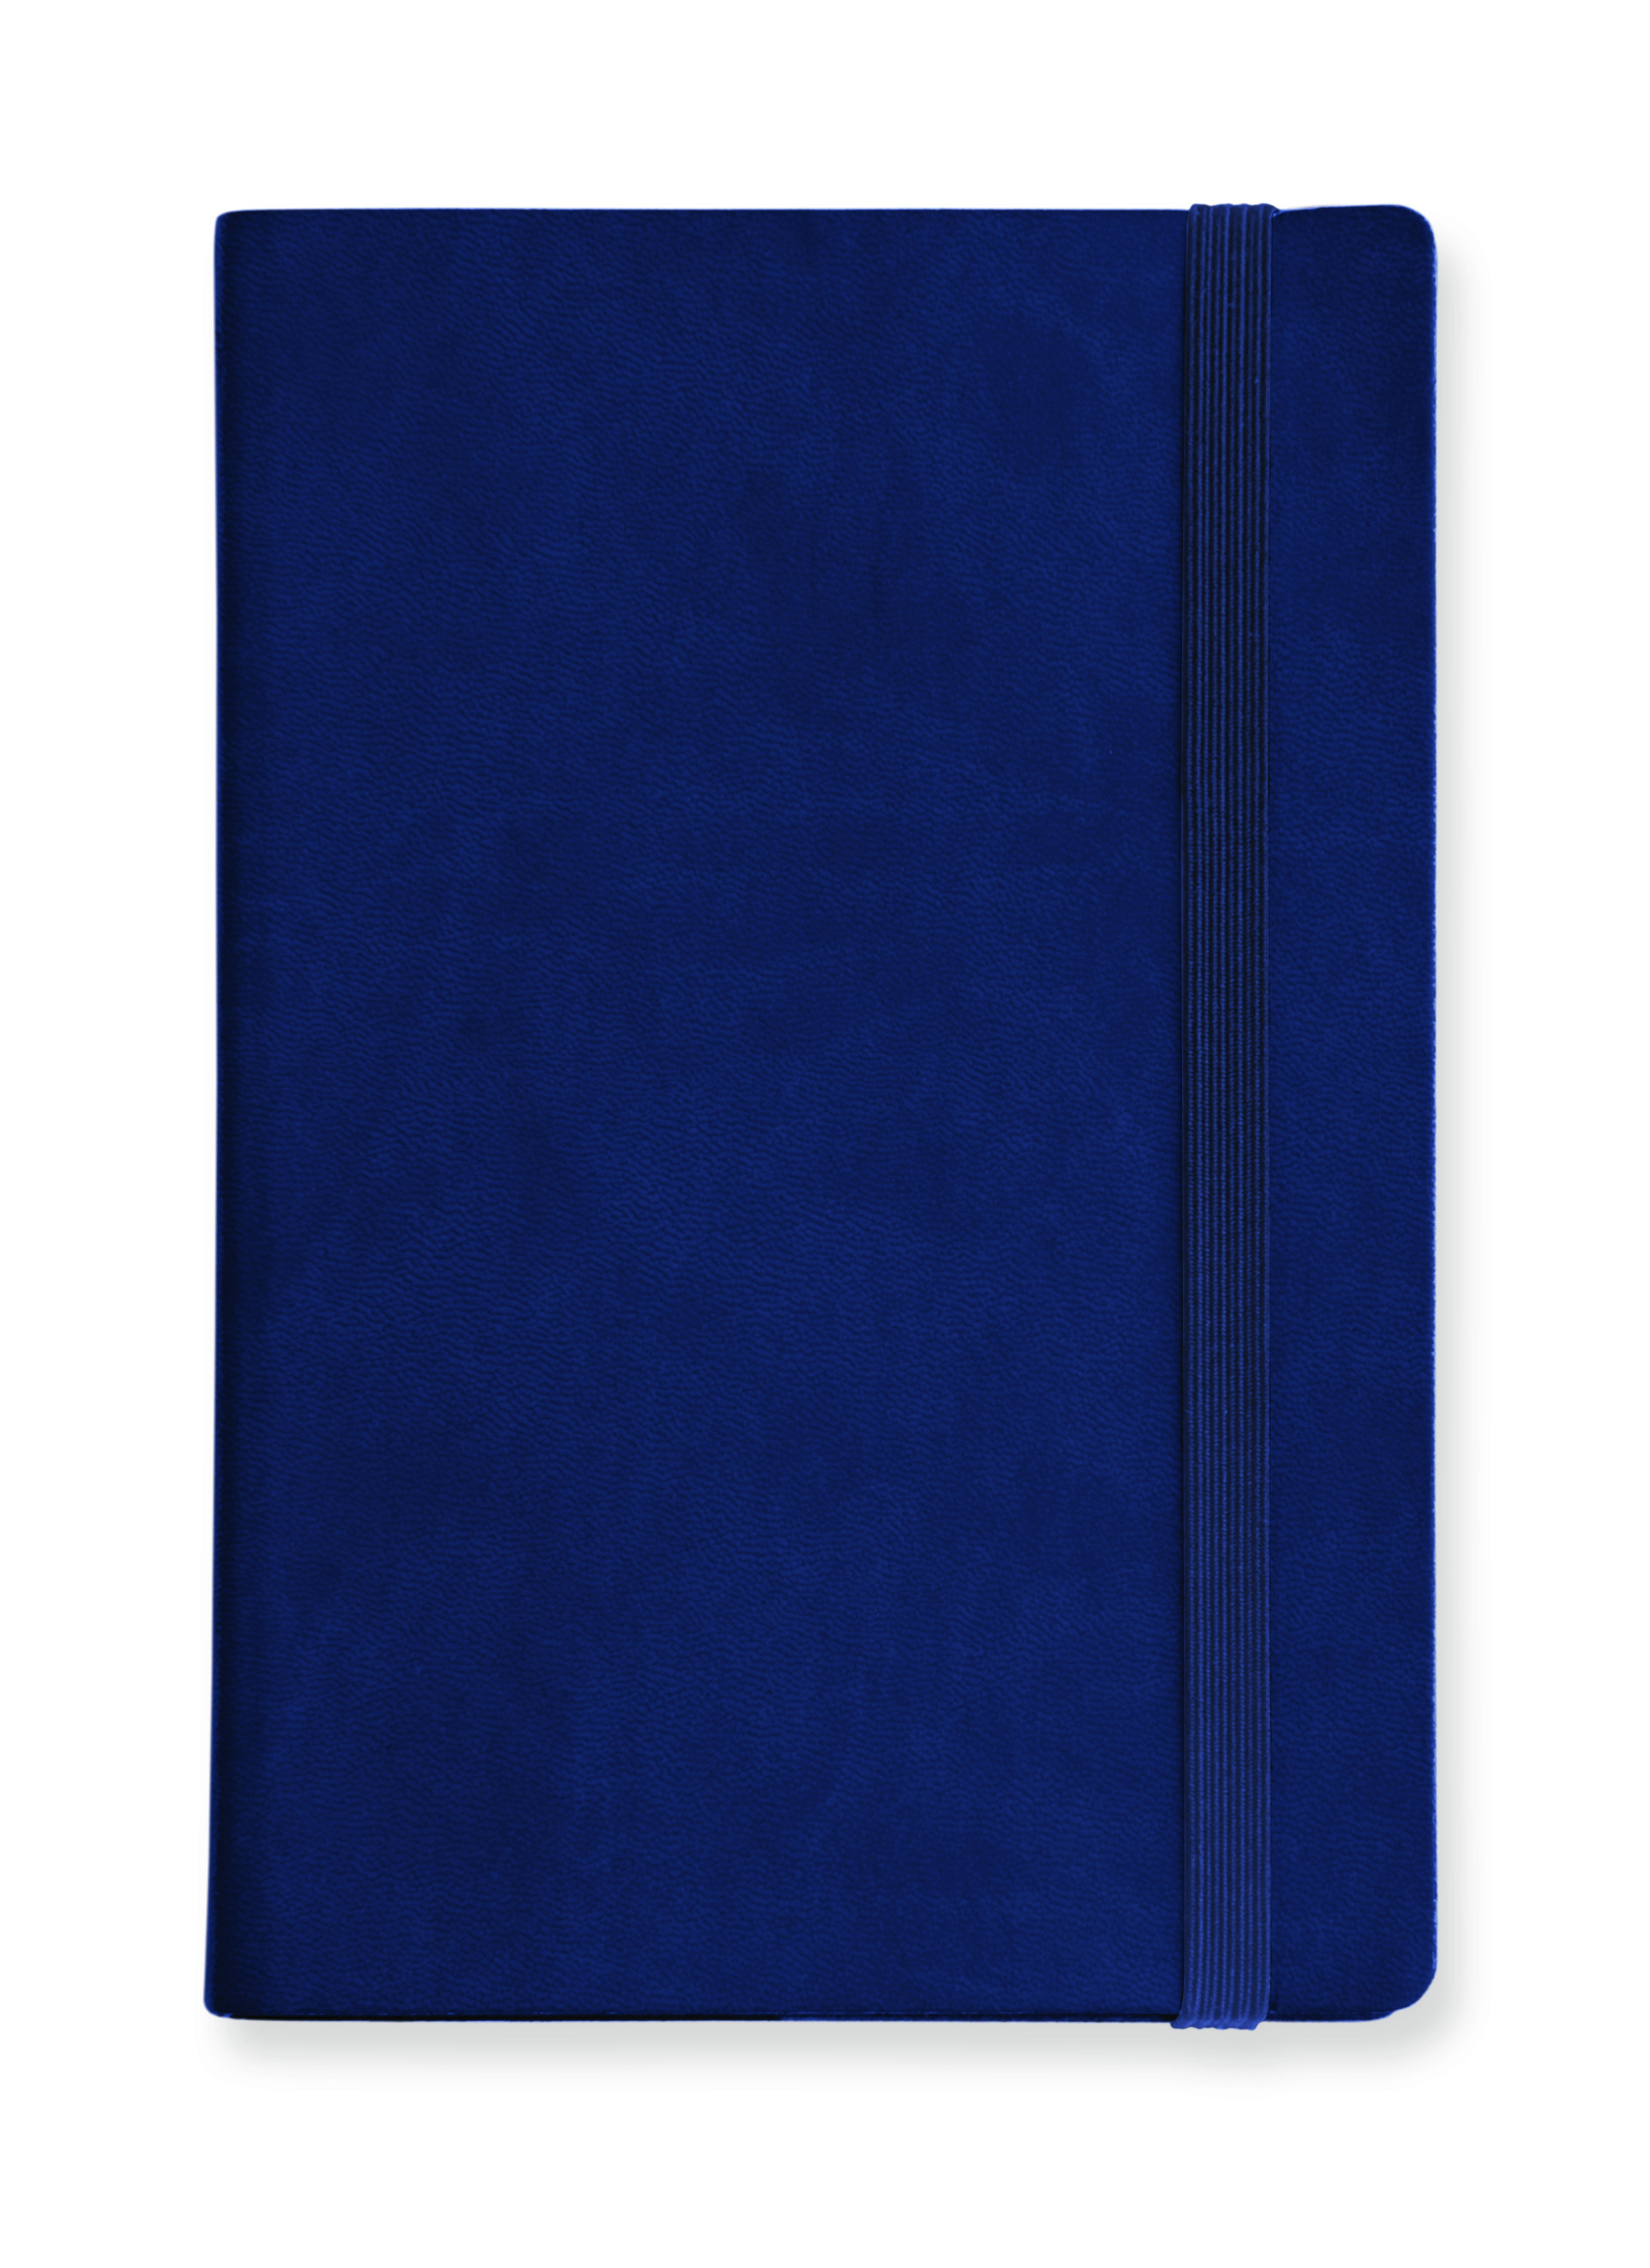 Image of My Notebook Small a pagine bianche. Blu